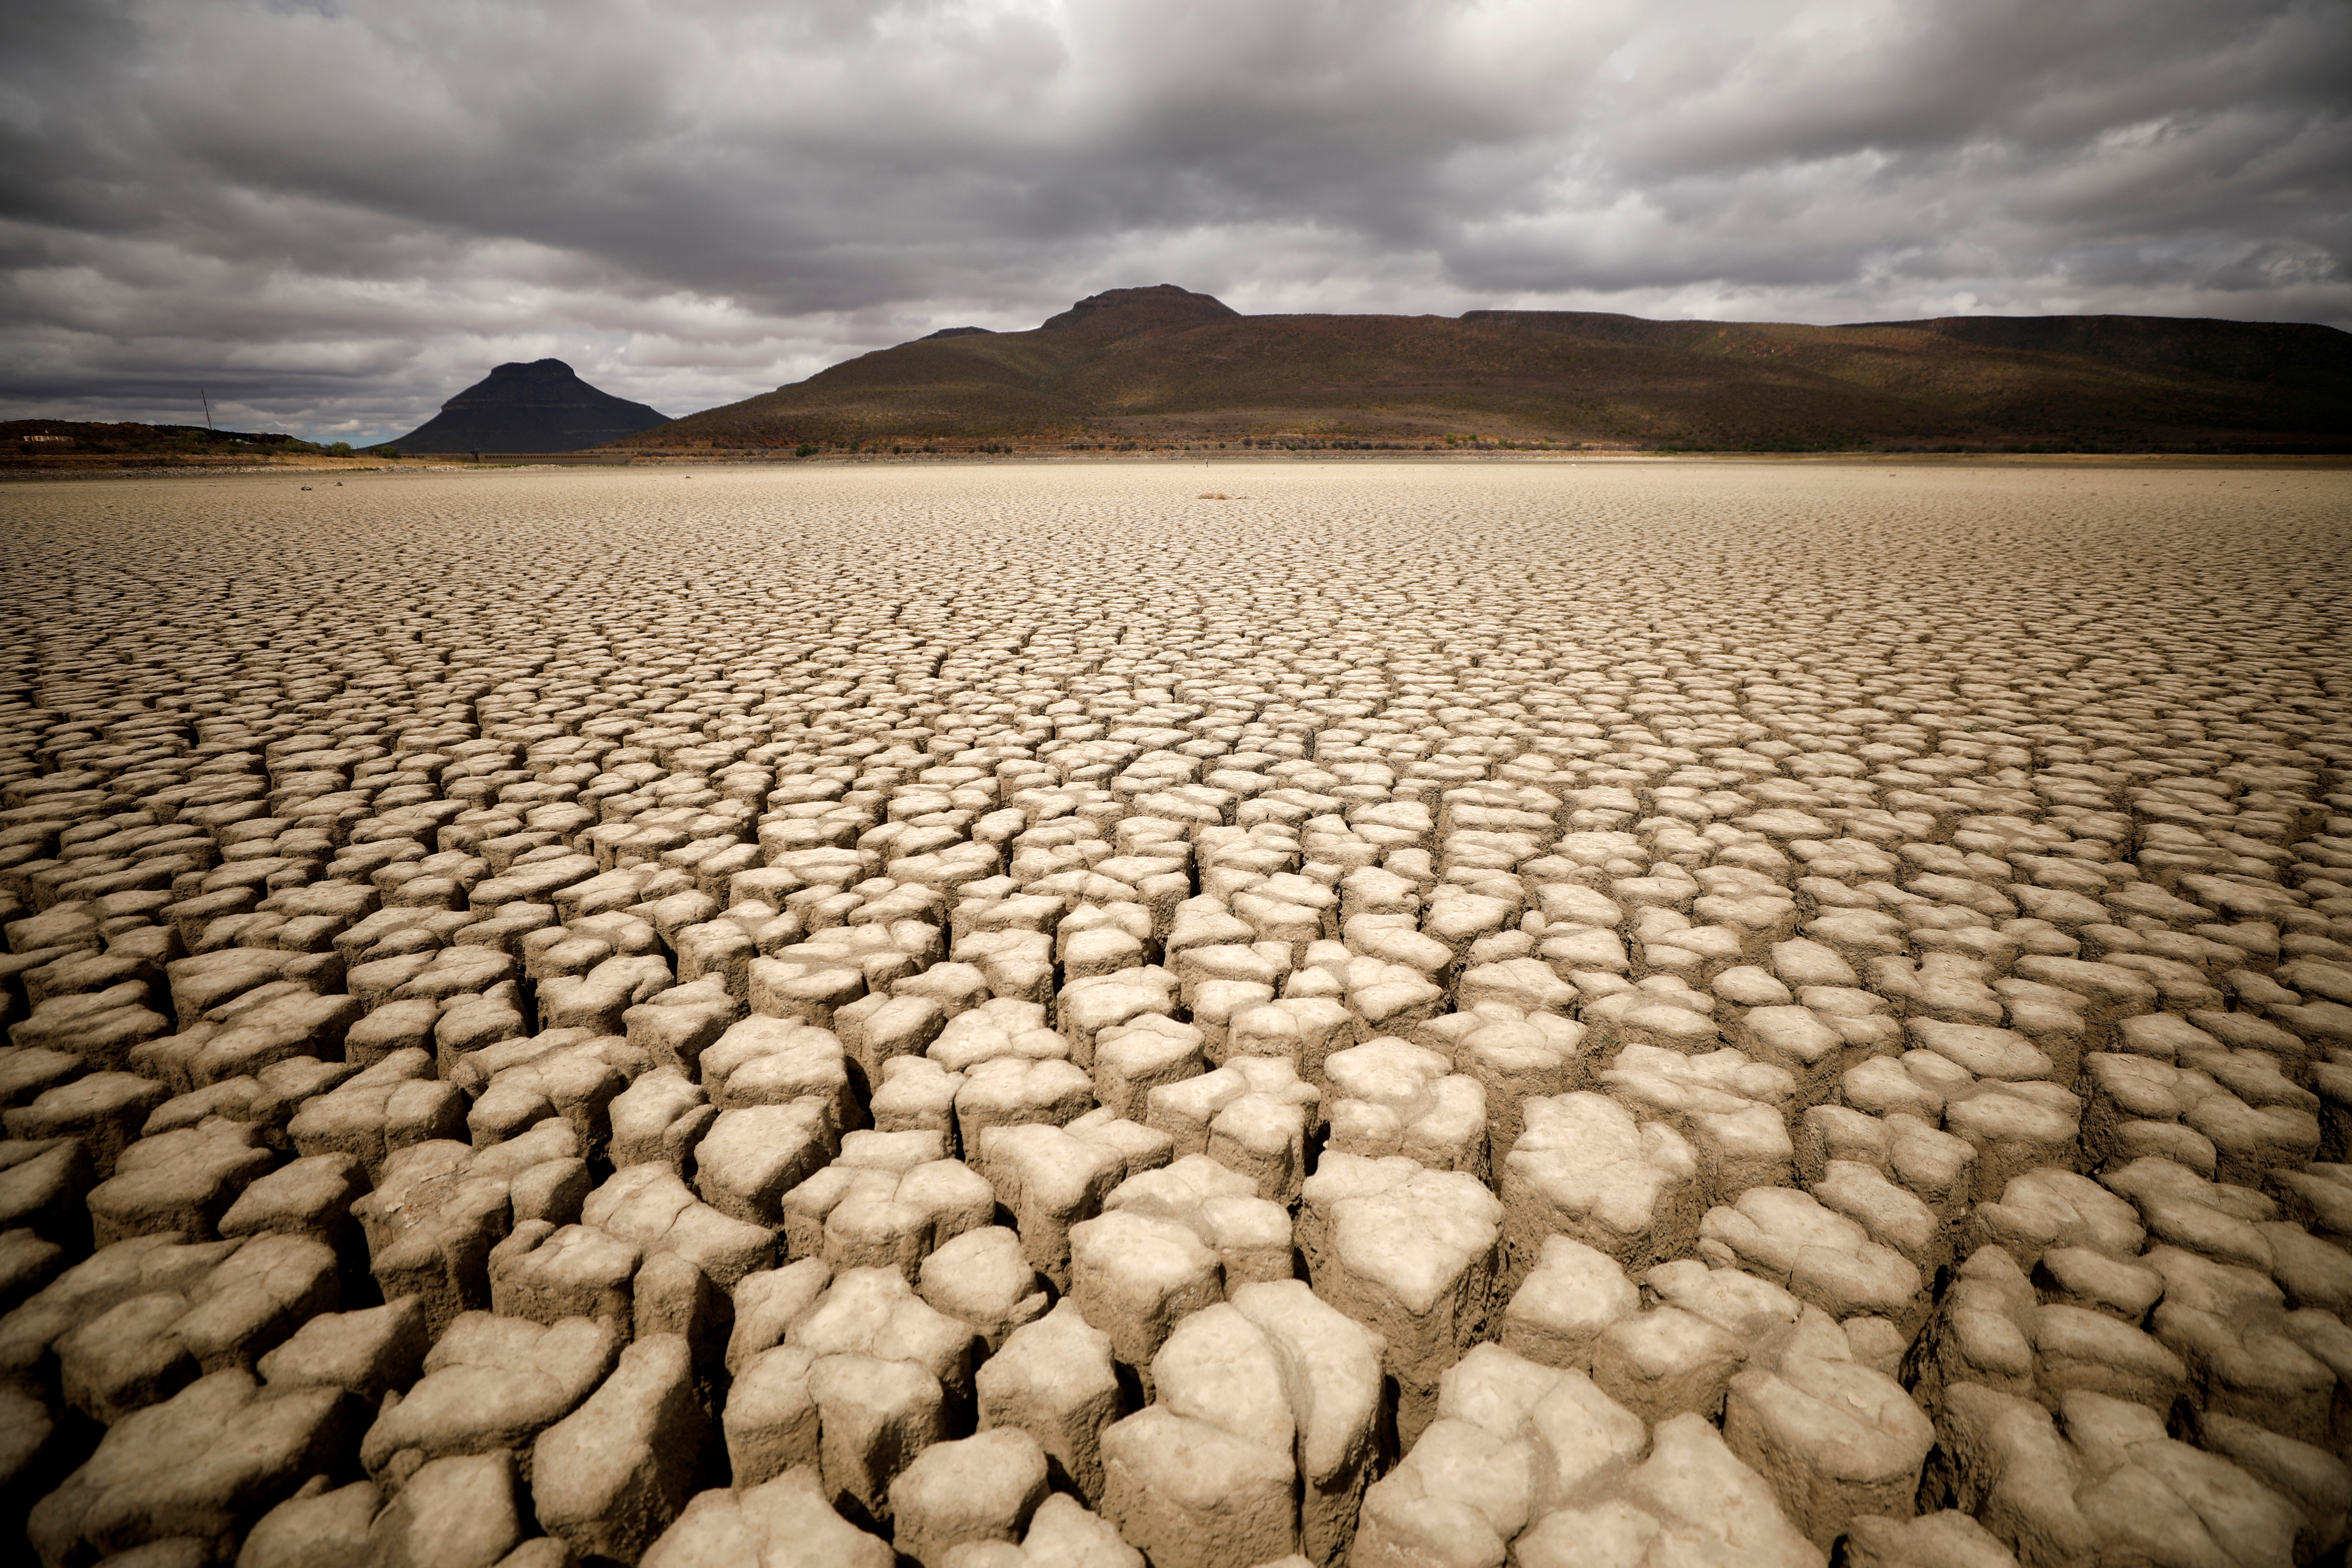 Clouds gather but produce no rain as cracks are seen in the dried up municipal dam in drought-stricken Graaff-Reinet, South Africa, November 14, 2019. Picture taken November 14, 2019. REUTERS/Mike Hutchings     TPX IMAGES OF THE DAY - RC2WKD9A6VC9